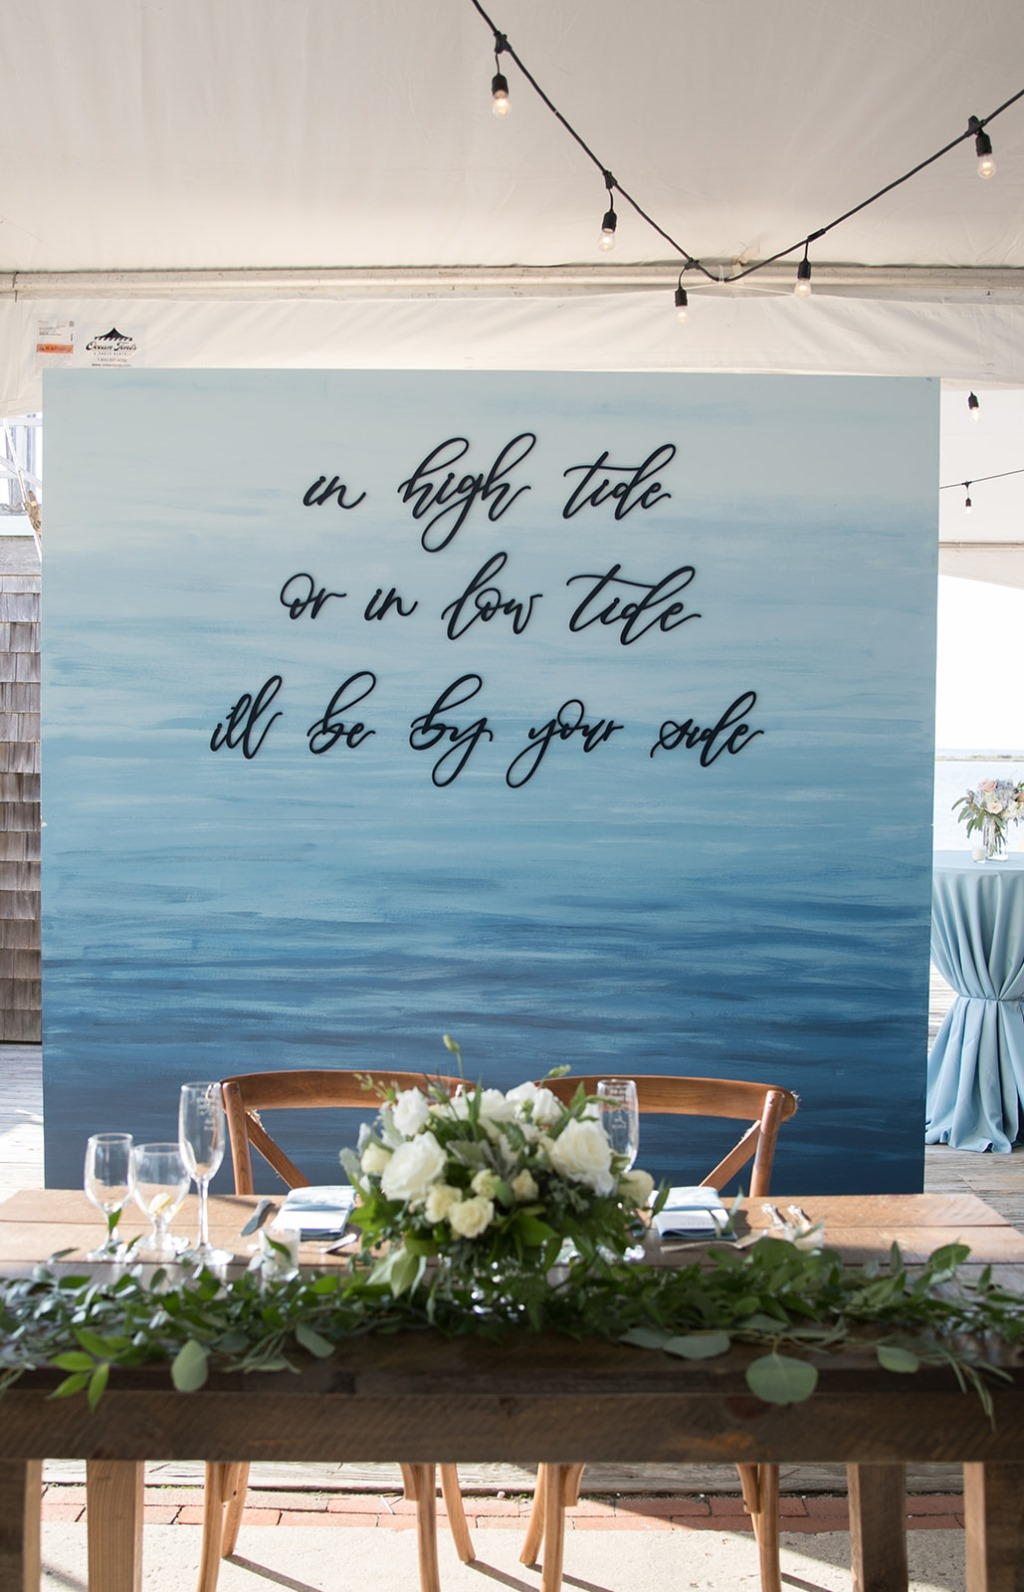 Custom ocean-inspired and painted sweetheart table backdrop.